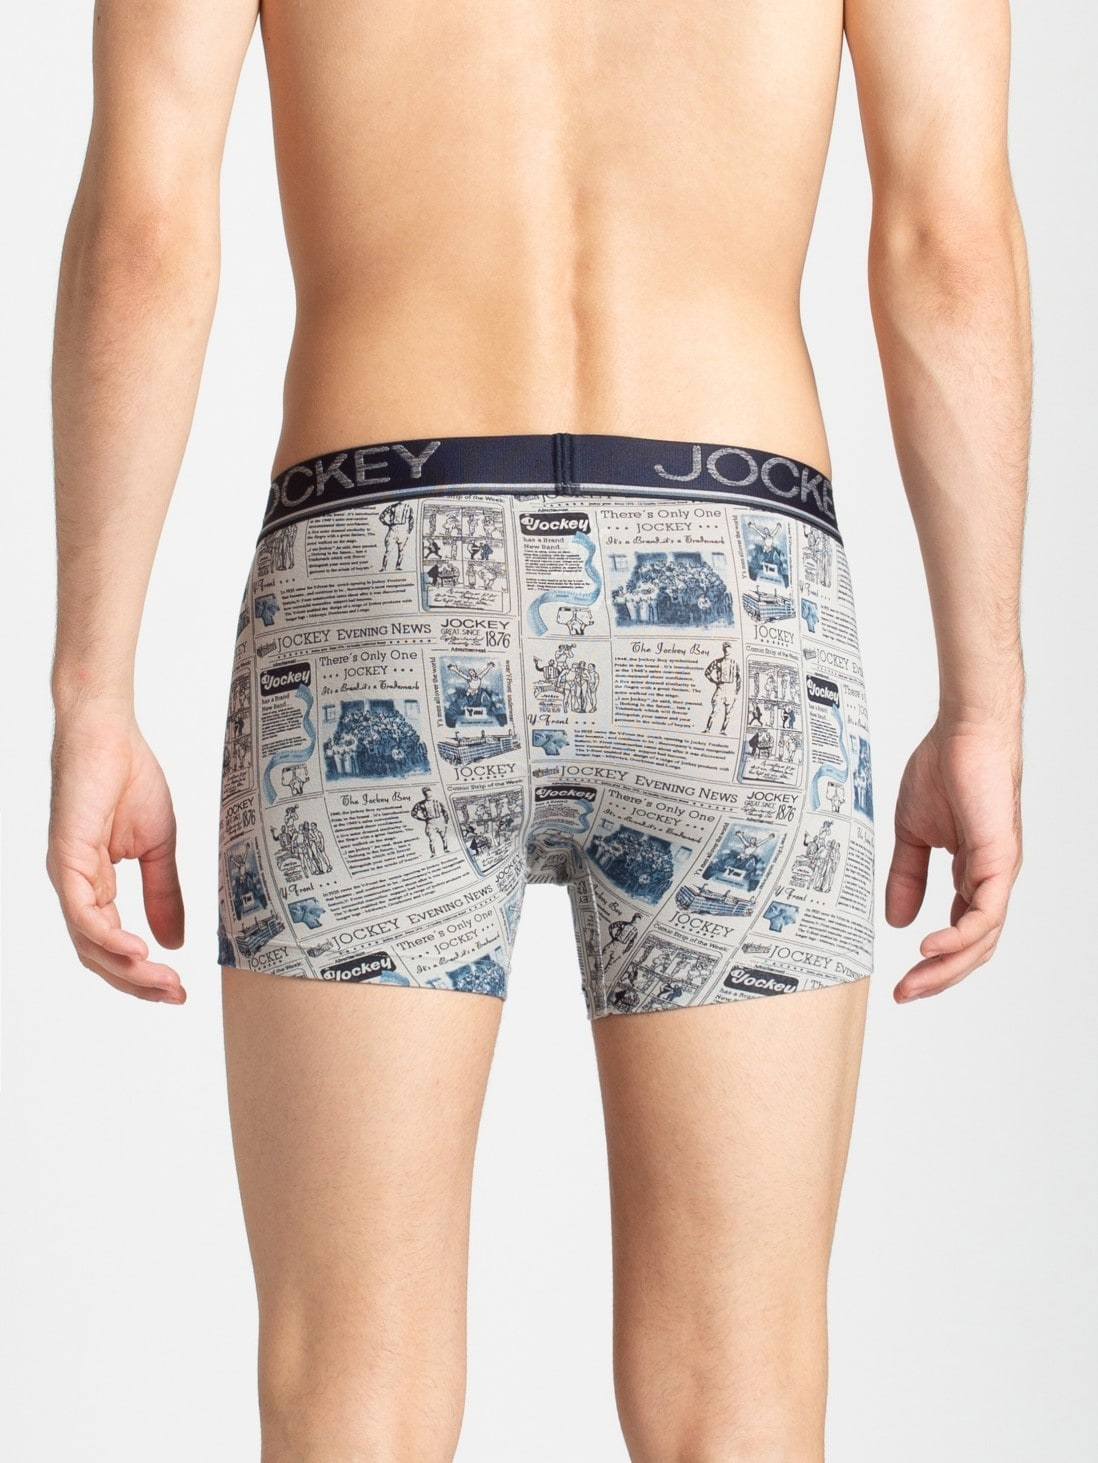 Jockey Grey & Navy Printed Trunk (M,Grey & Navy)